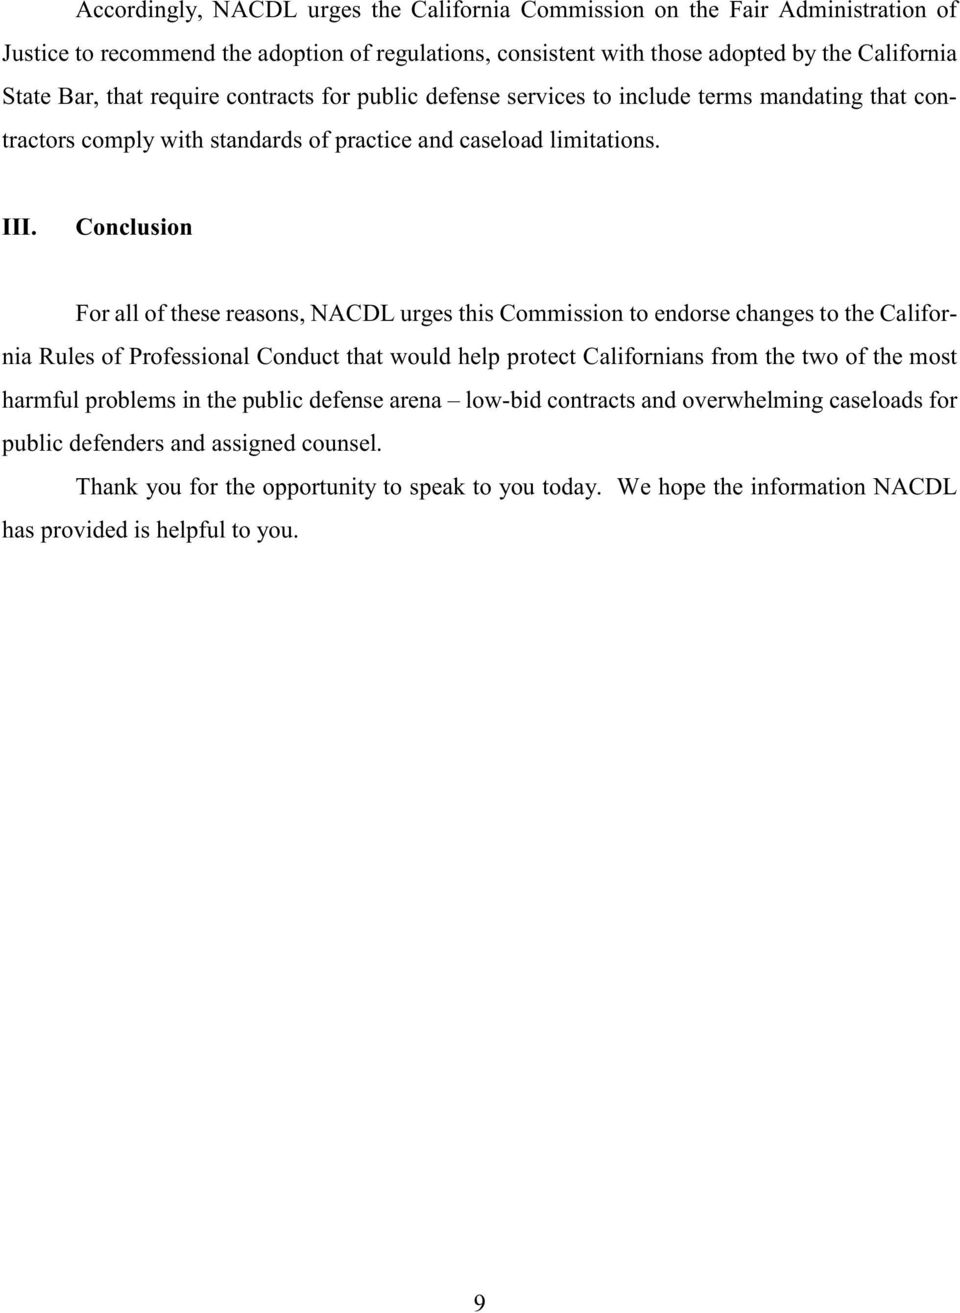 Conclusion For all of these reasons, NACDL urges this Commission to endorse changes to the California Rules of Professional Conduct that would help protect Californians from the two of the most